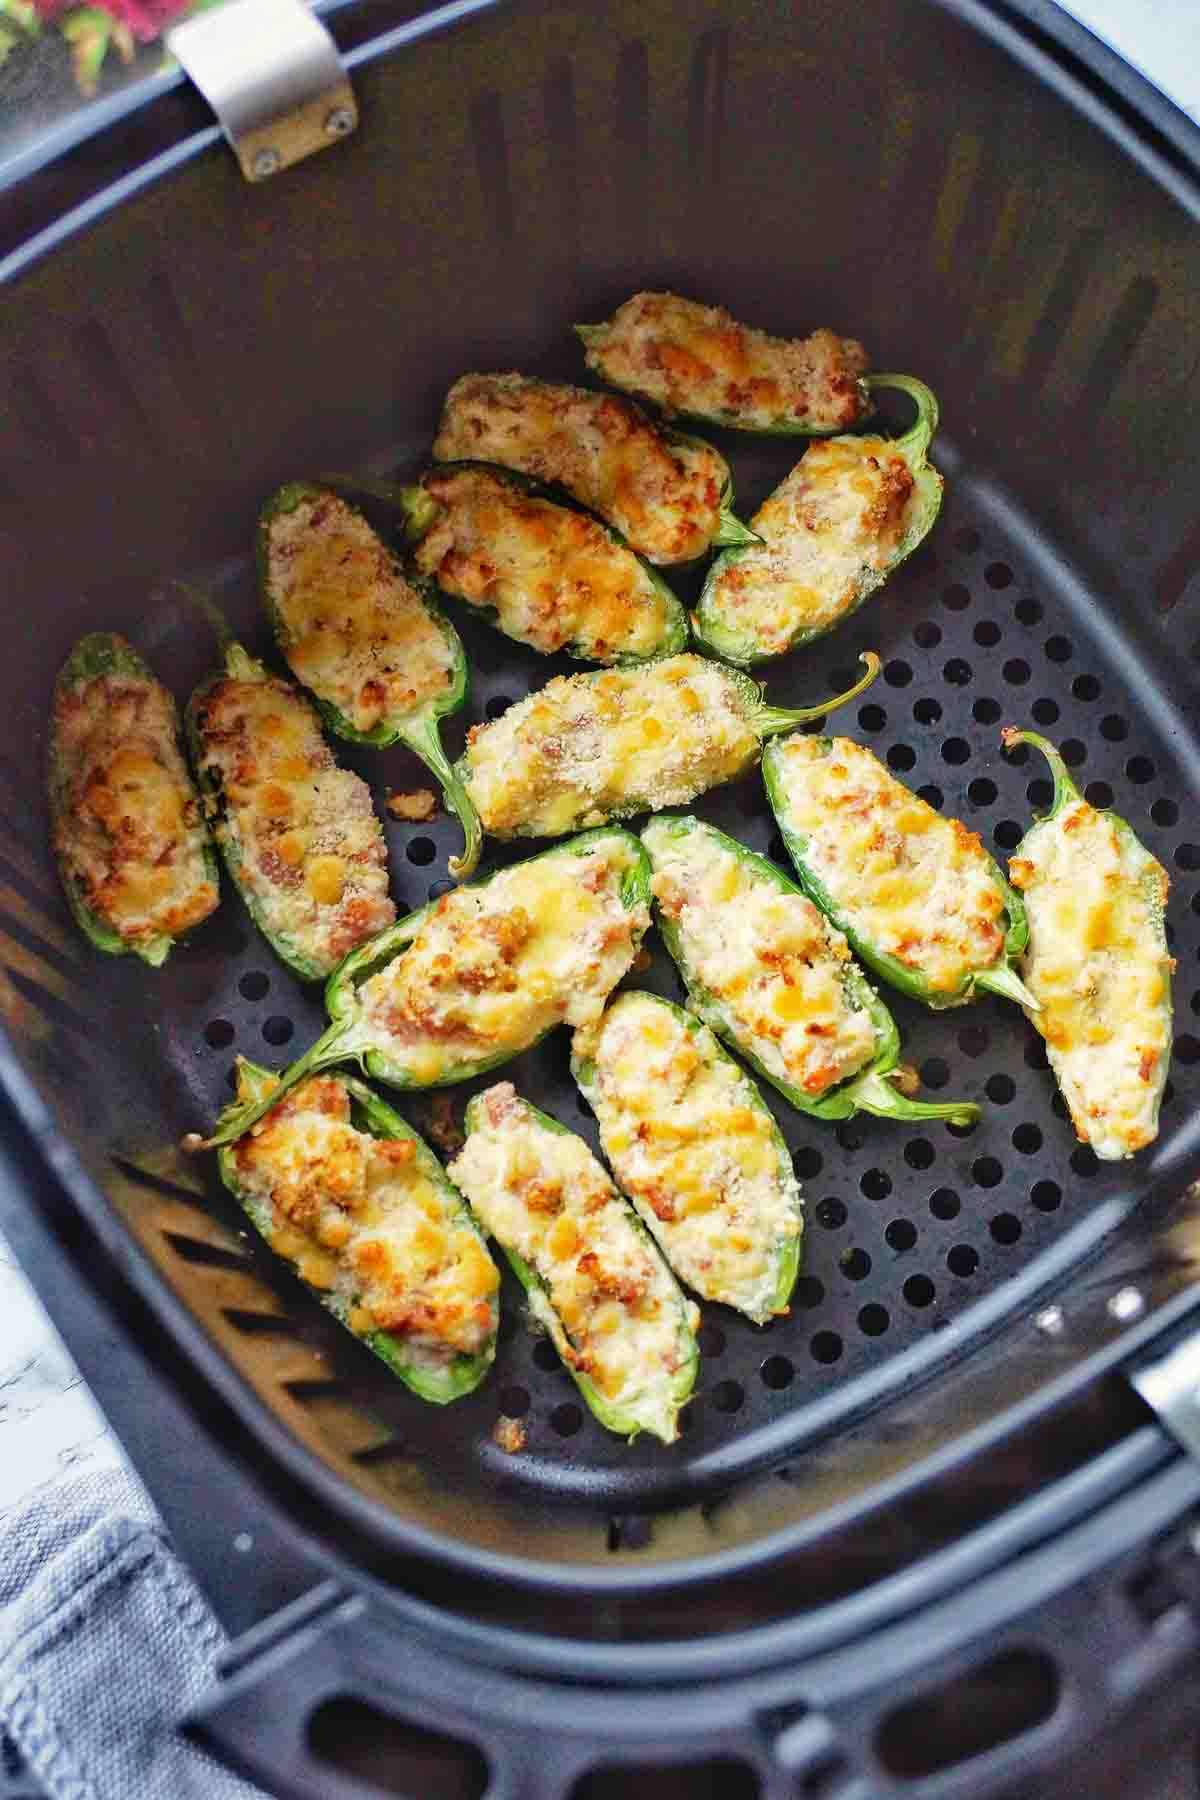 Cooked stuffed jalapenos in the basket of a air fryer